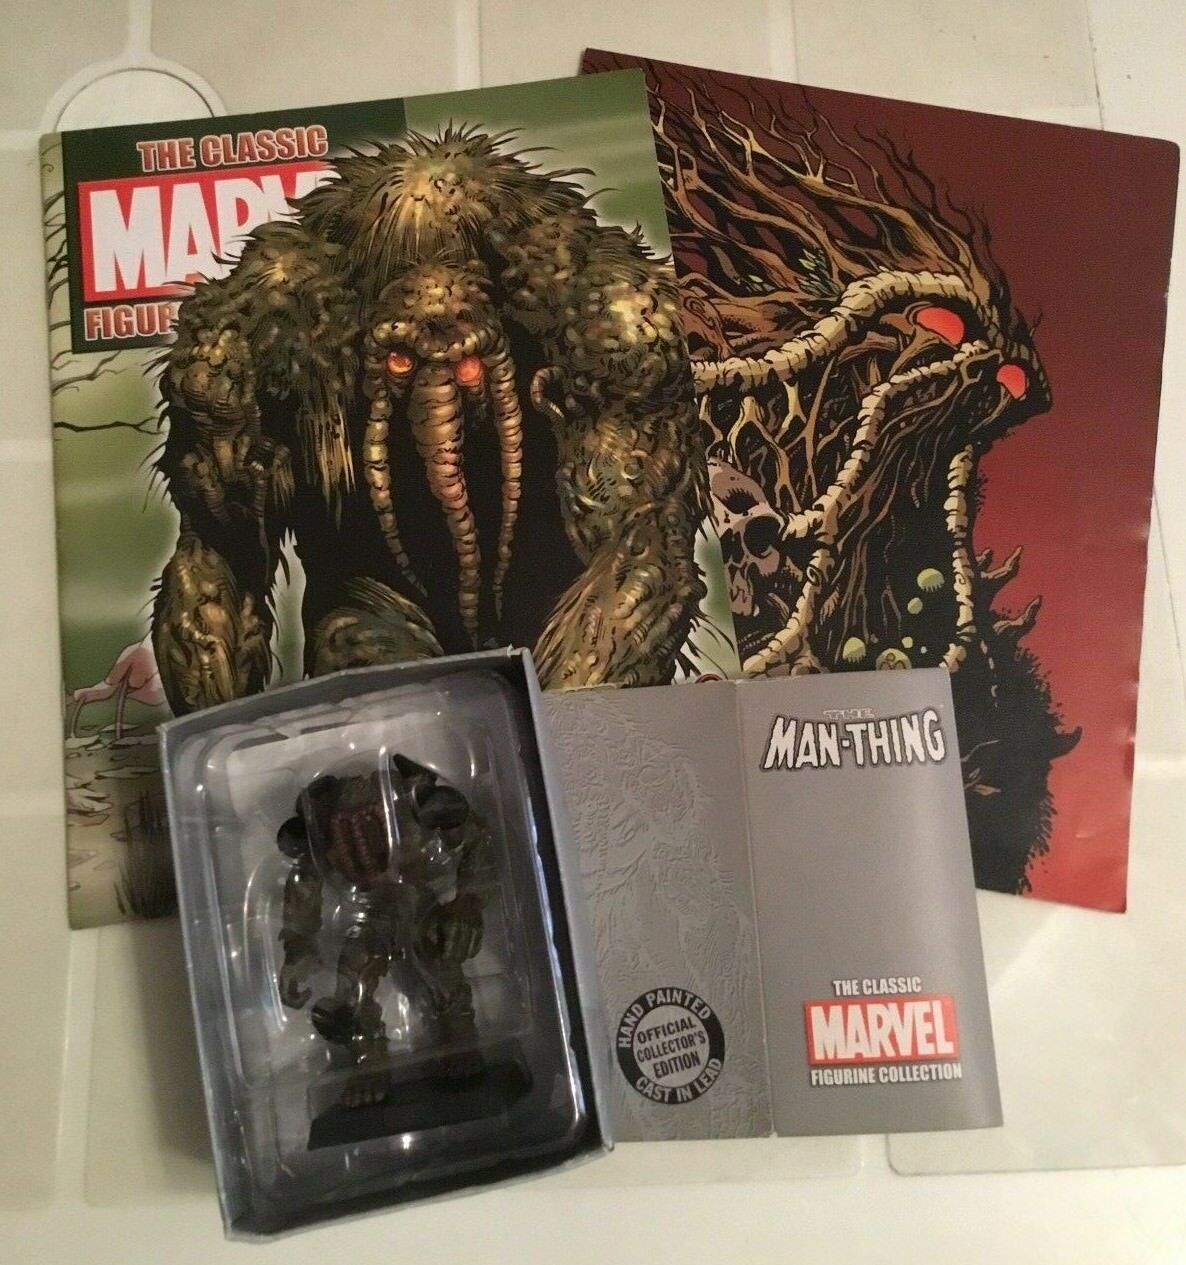 THE CLASSIC MARVEL FIGURINE COLLECTION SPECIAL THE MAN-THING Statua+ Fasc POSTER